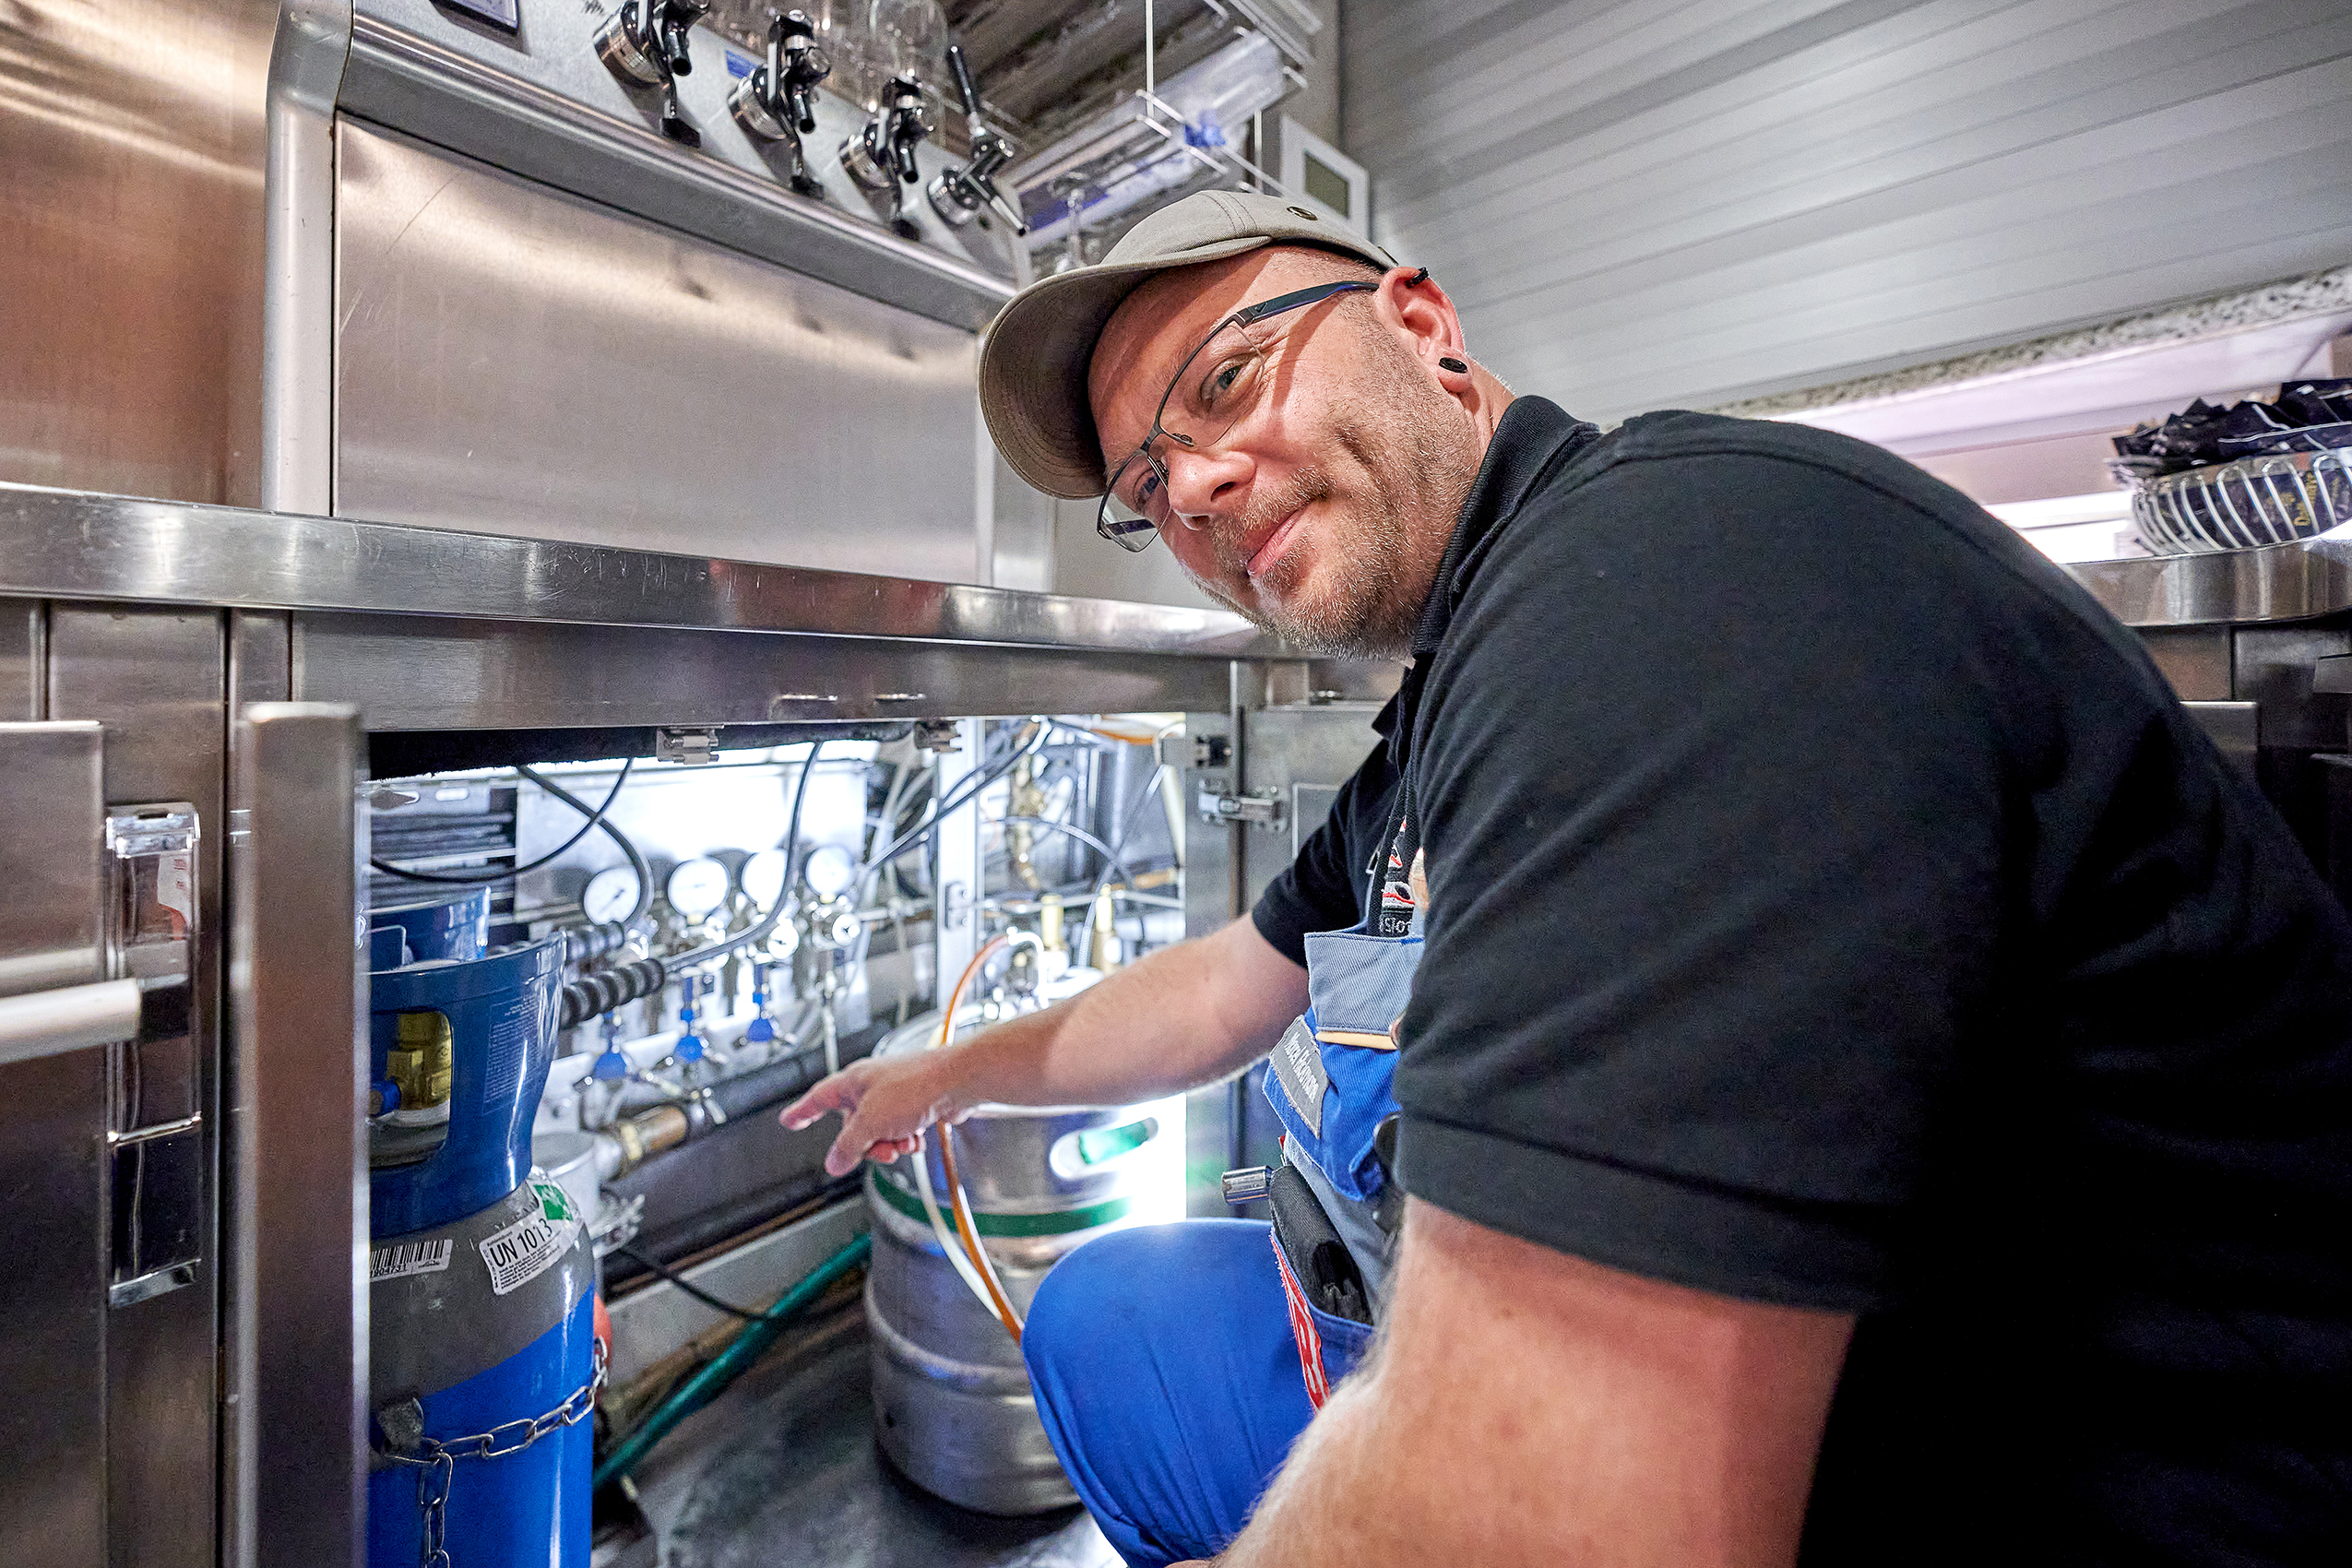 Beer pumps in the narrow on-board kitchen need a supply of CO<sub>2</sub>. This is a job for mechatronics specialist Marcel Rickmann.